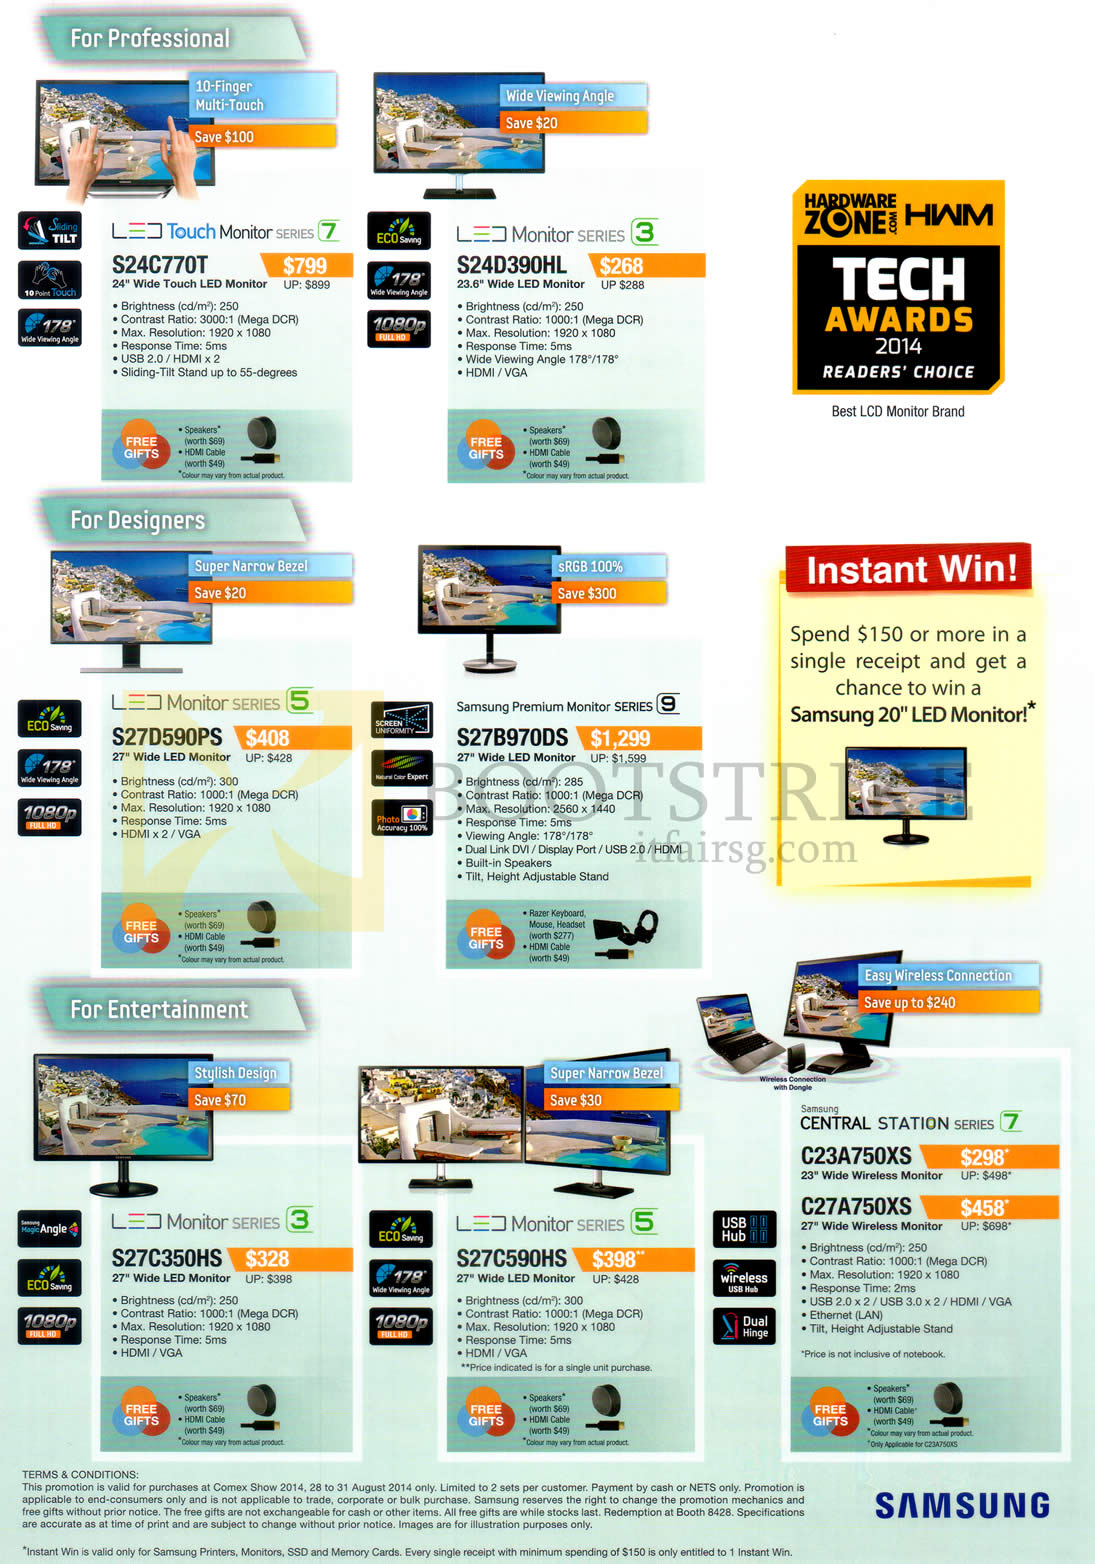 COMEX 2014 price list image brochure of Samsung Monitors S24C770T, S24D390HL, S27D590Ps, S27B970DS, S27C350HS, S27C590HS, C23A750XS, C27A750XS